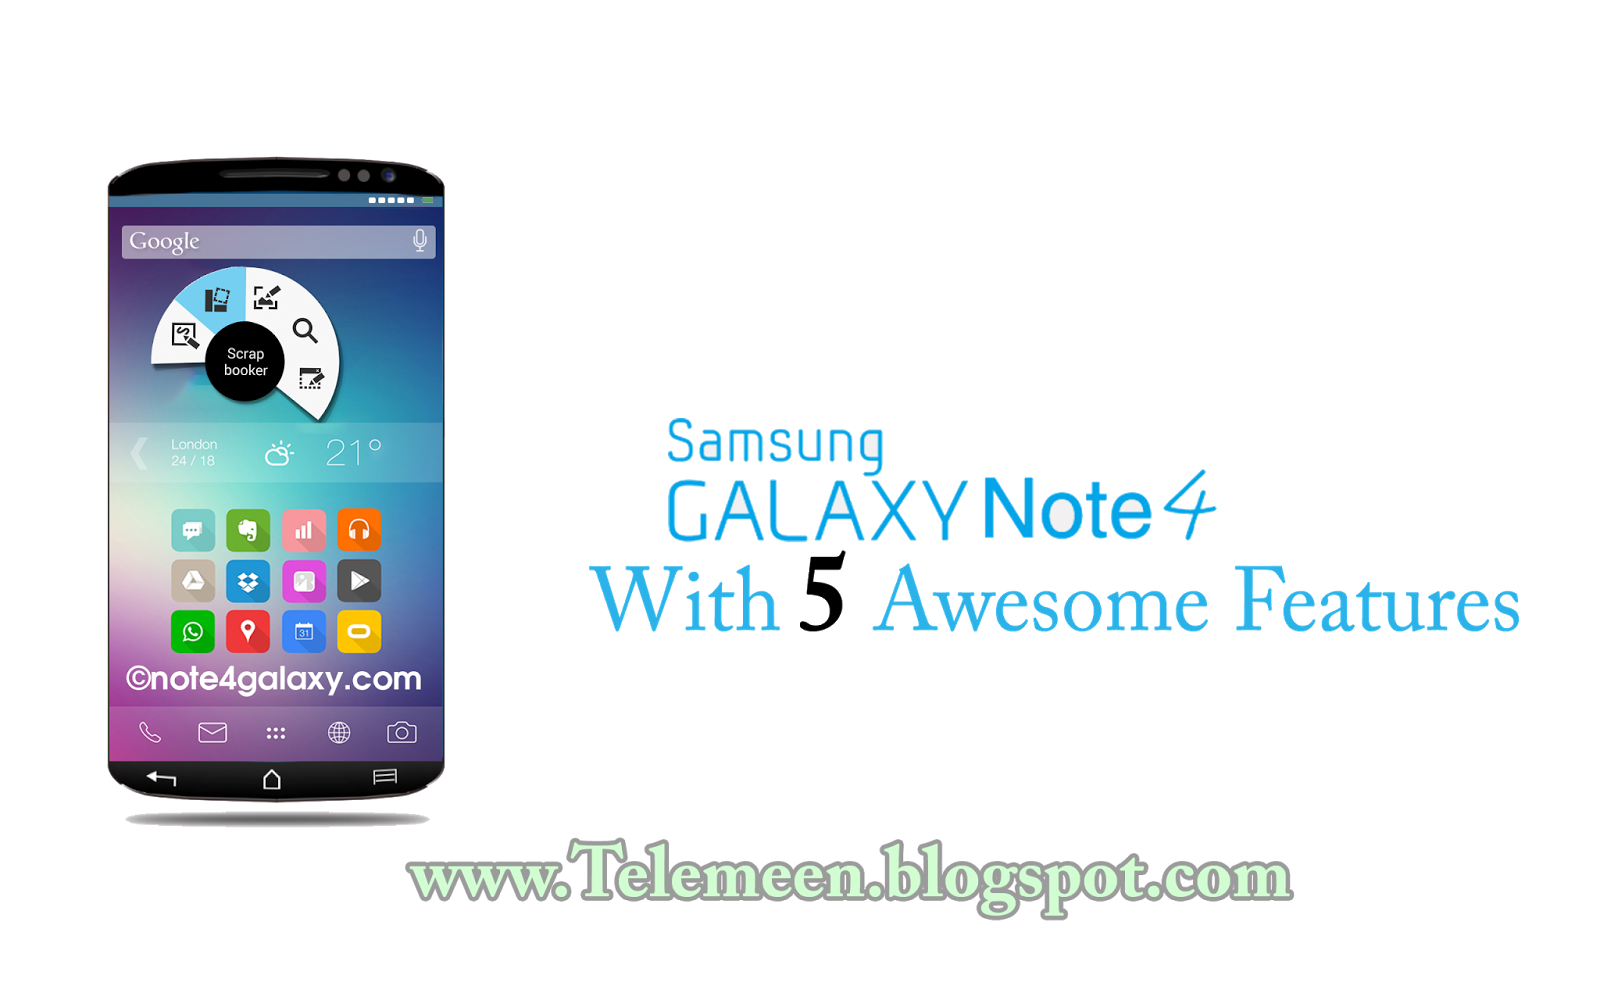 Samsung Galaxy Note 4, Samsung Galaxy Note 4 Cool, Awesome, Latest Features, Samsung Galaxy Note 4 Camera Resolution